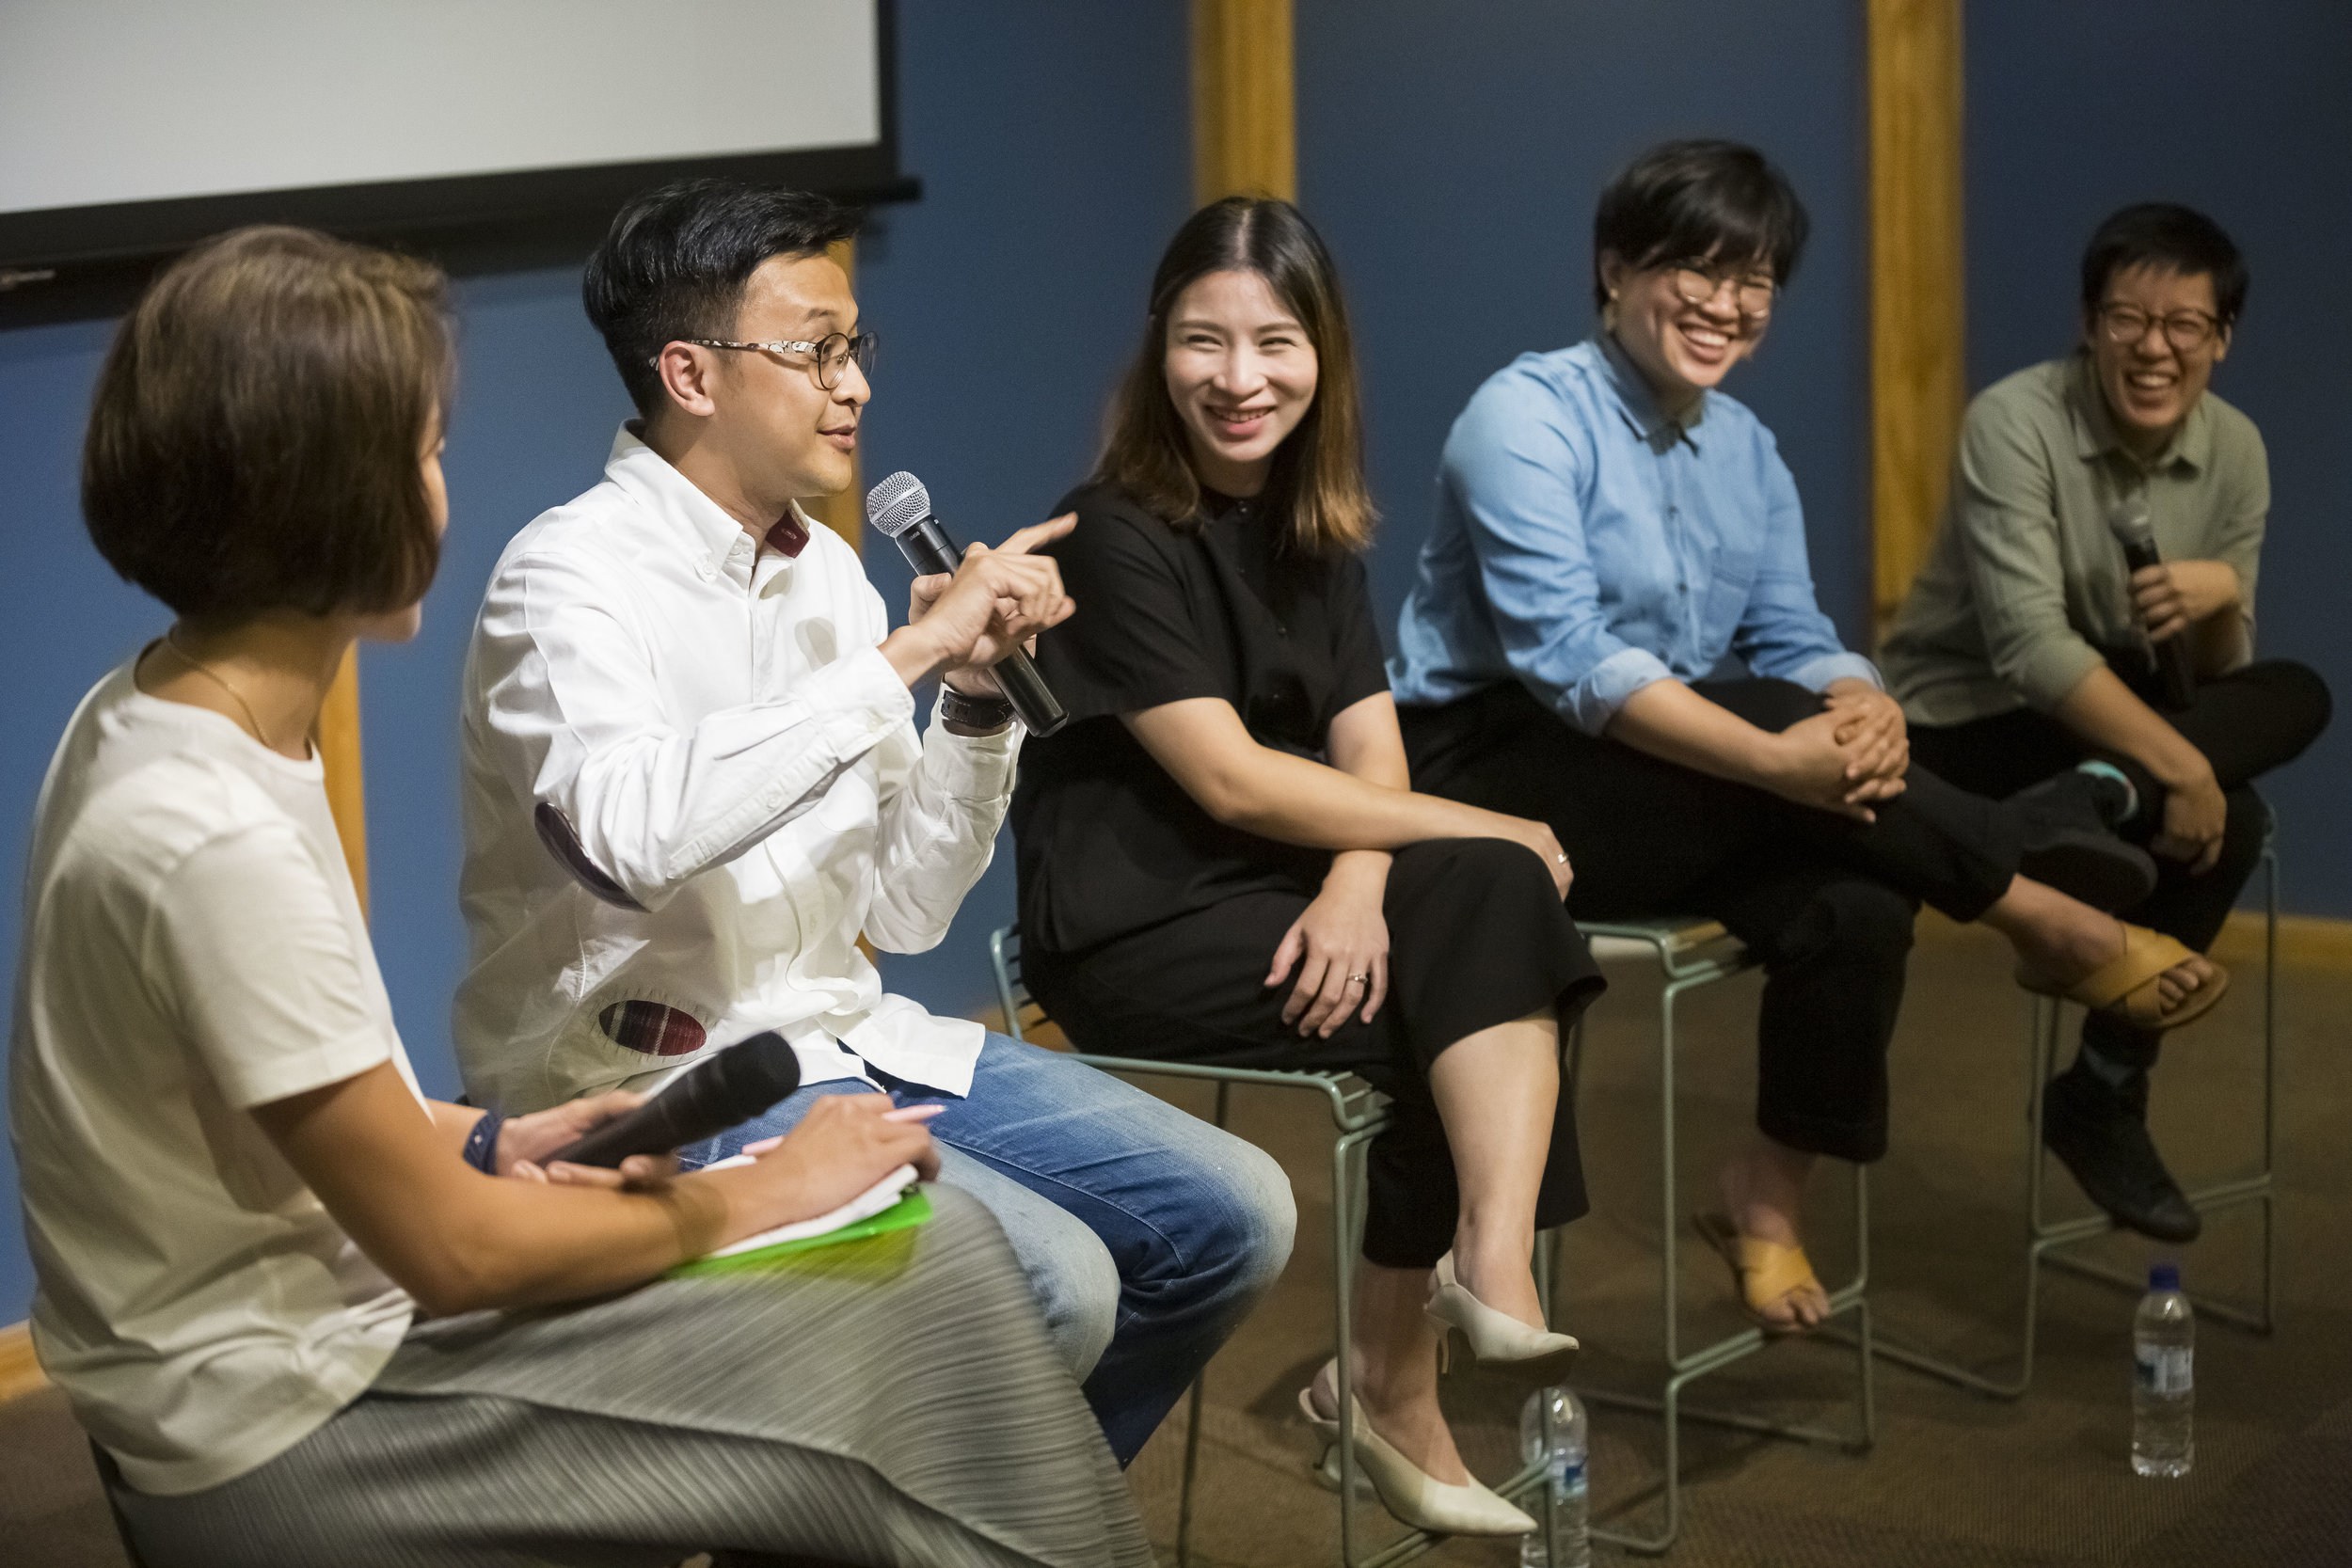 L-R: Jacqueline Chang (moderator); Mas Shafreen of Band of Doodlers; Rebecca Ting of Beyond the Vines; and Jackie Goh and Nat Kwee of 8EyedSpud speaking on starting out as a creative in Singapore